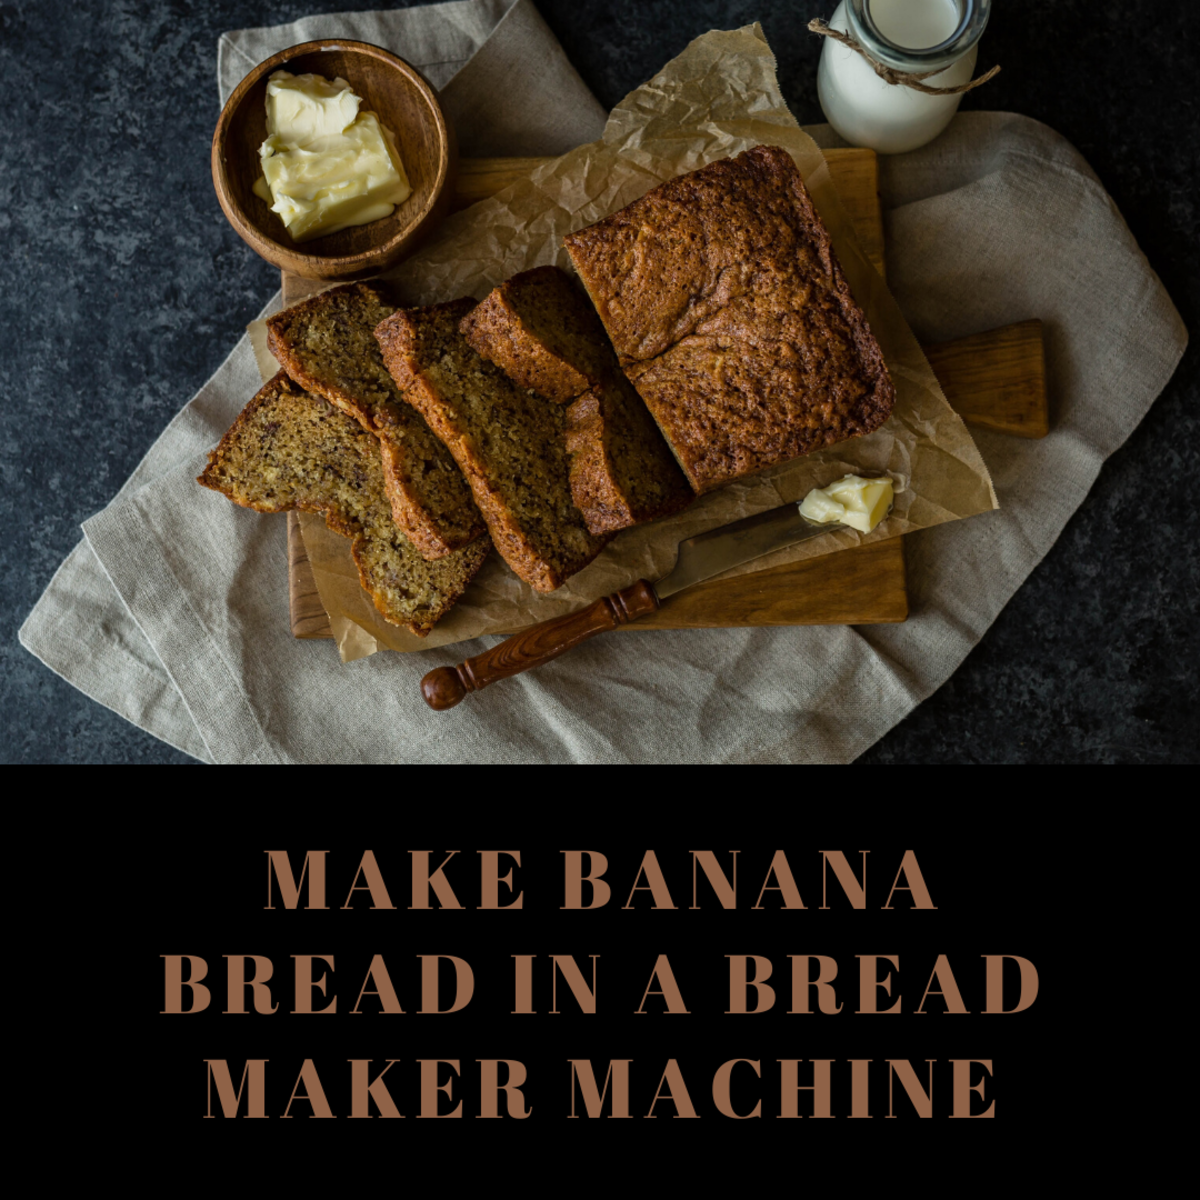 This banana bread recipe is truly delicious.